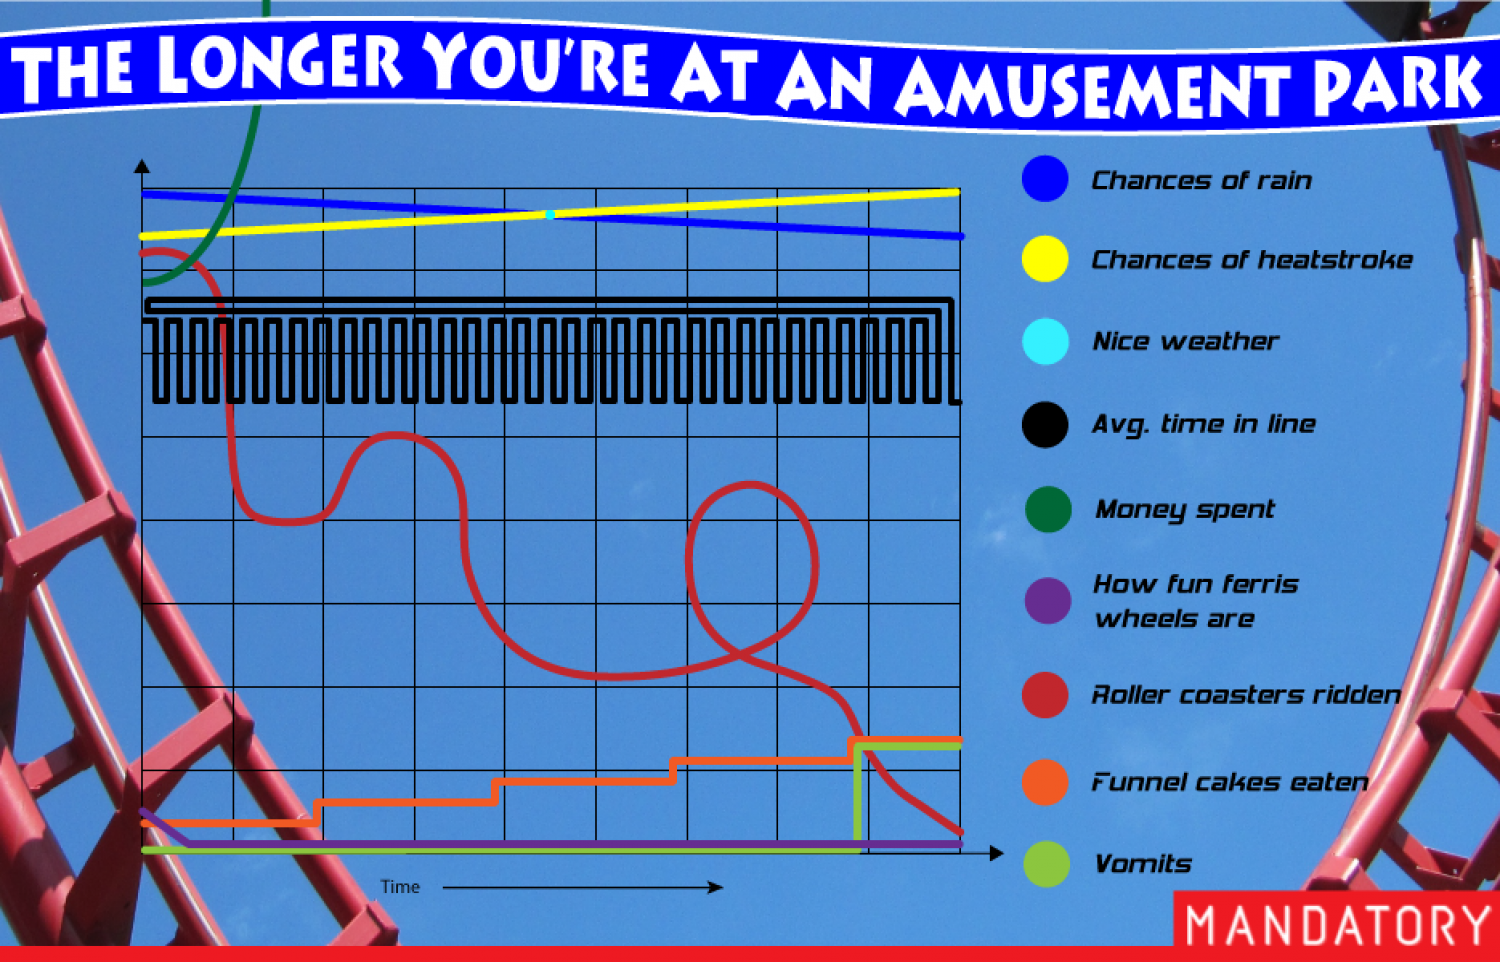 The Longer You're At An Amusement Park Infographic